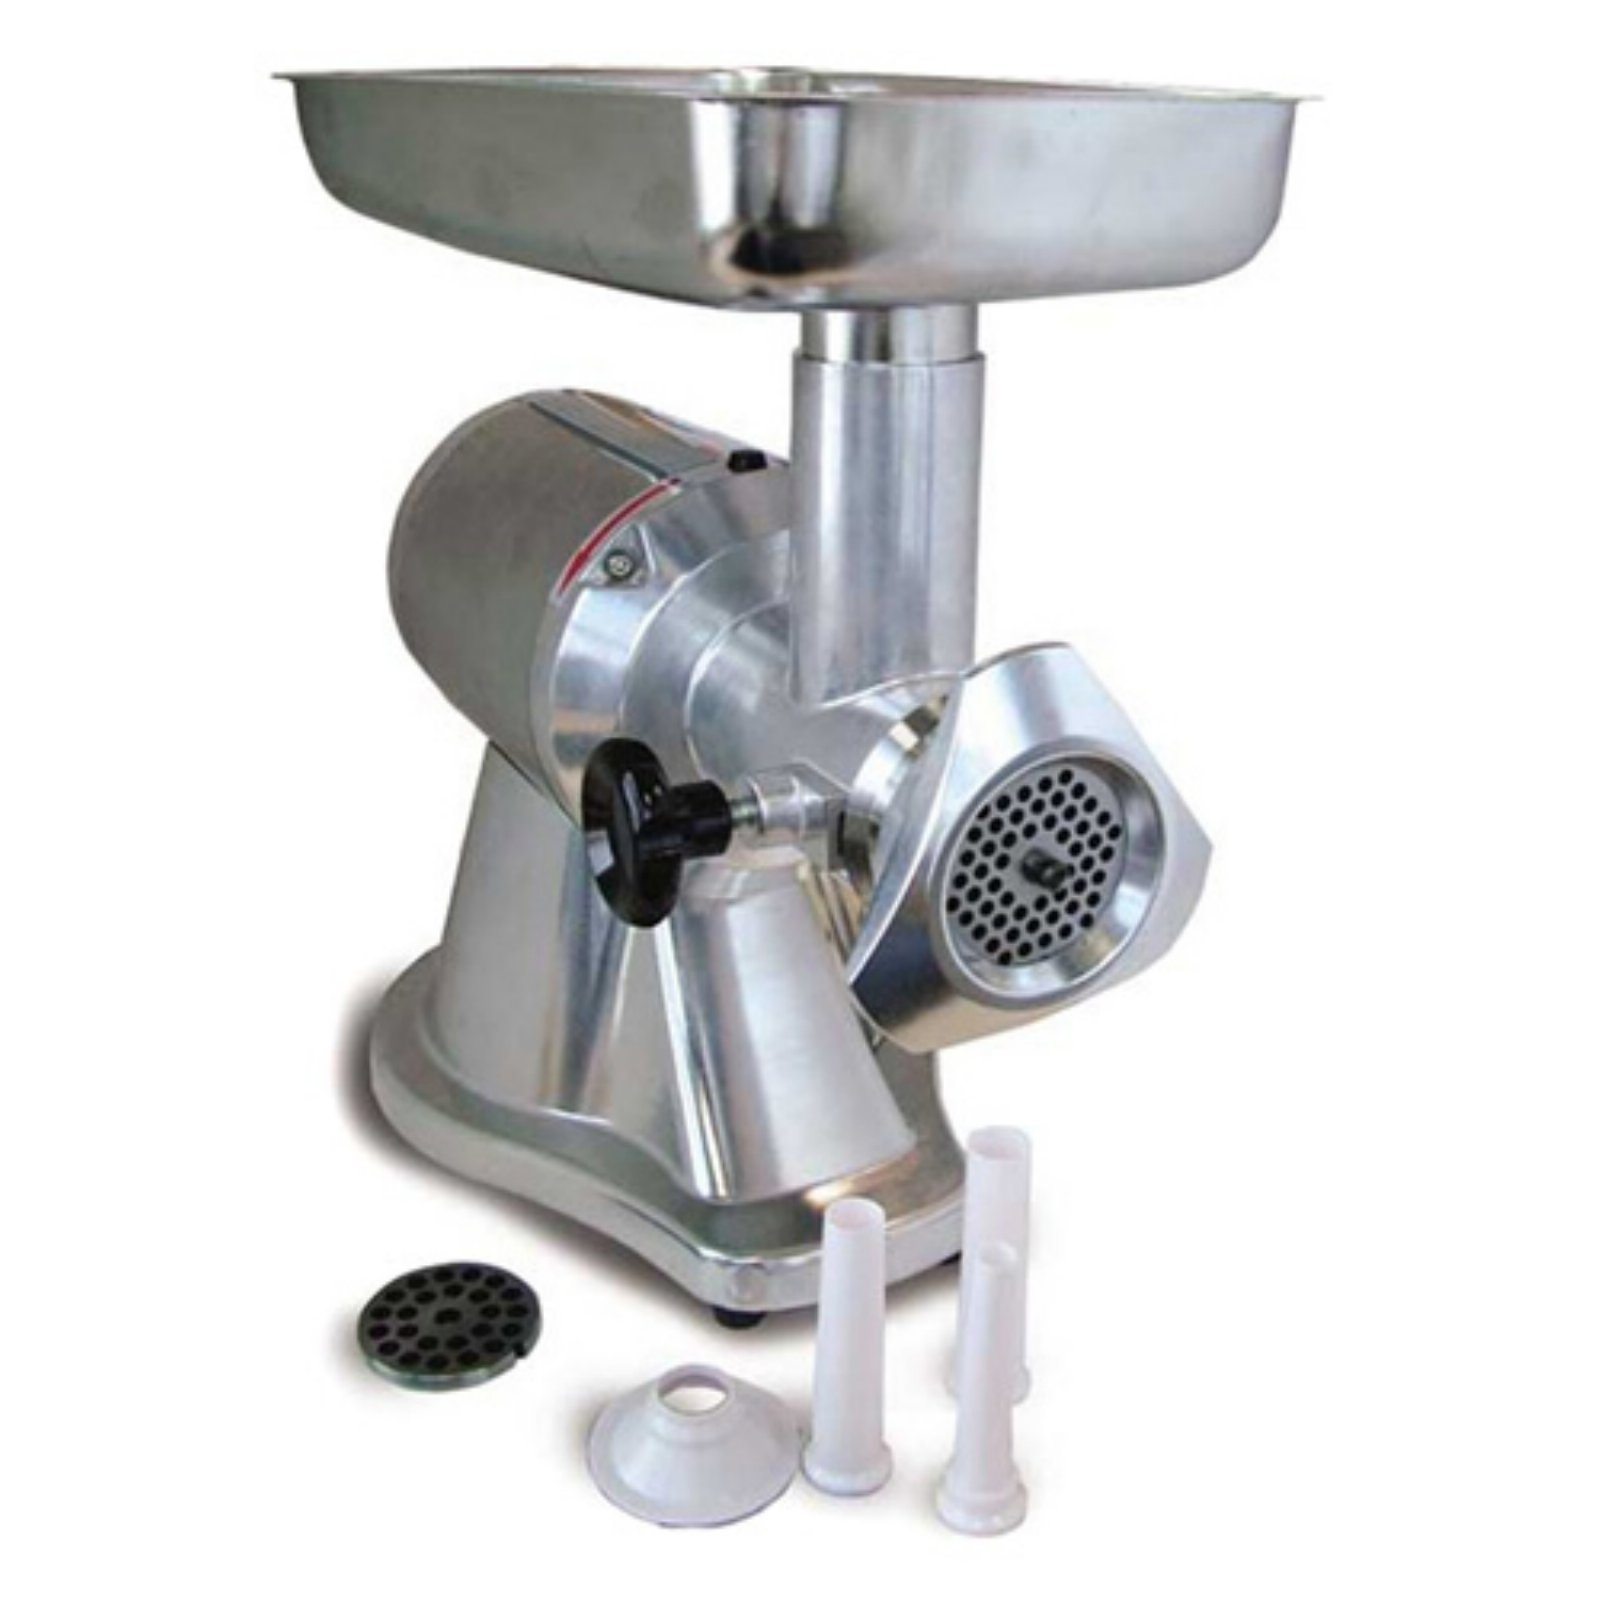 Omcan FA12G81 Commercial Electric Meat Grinder